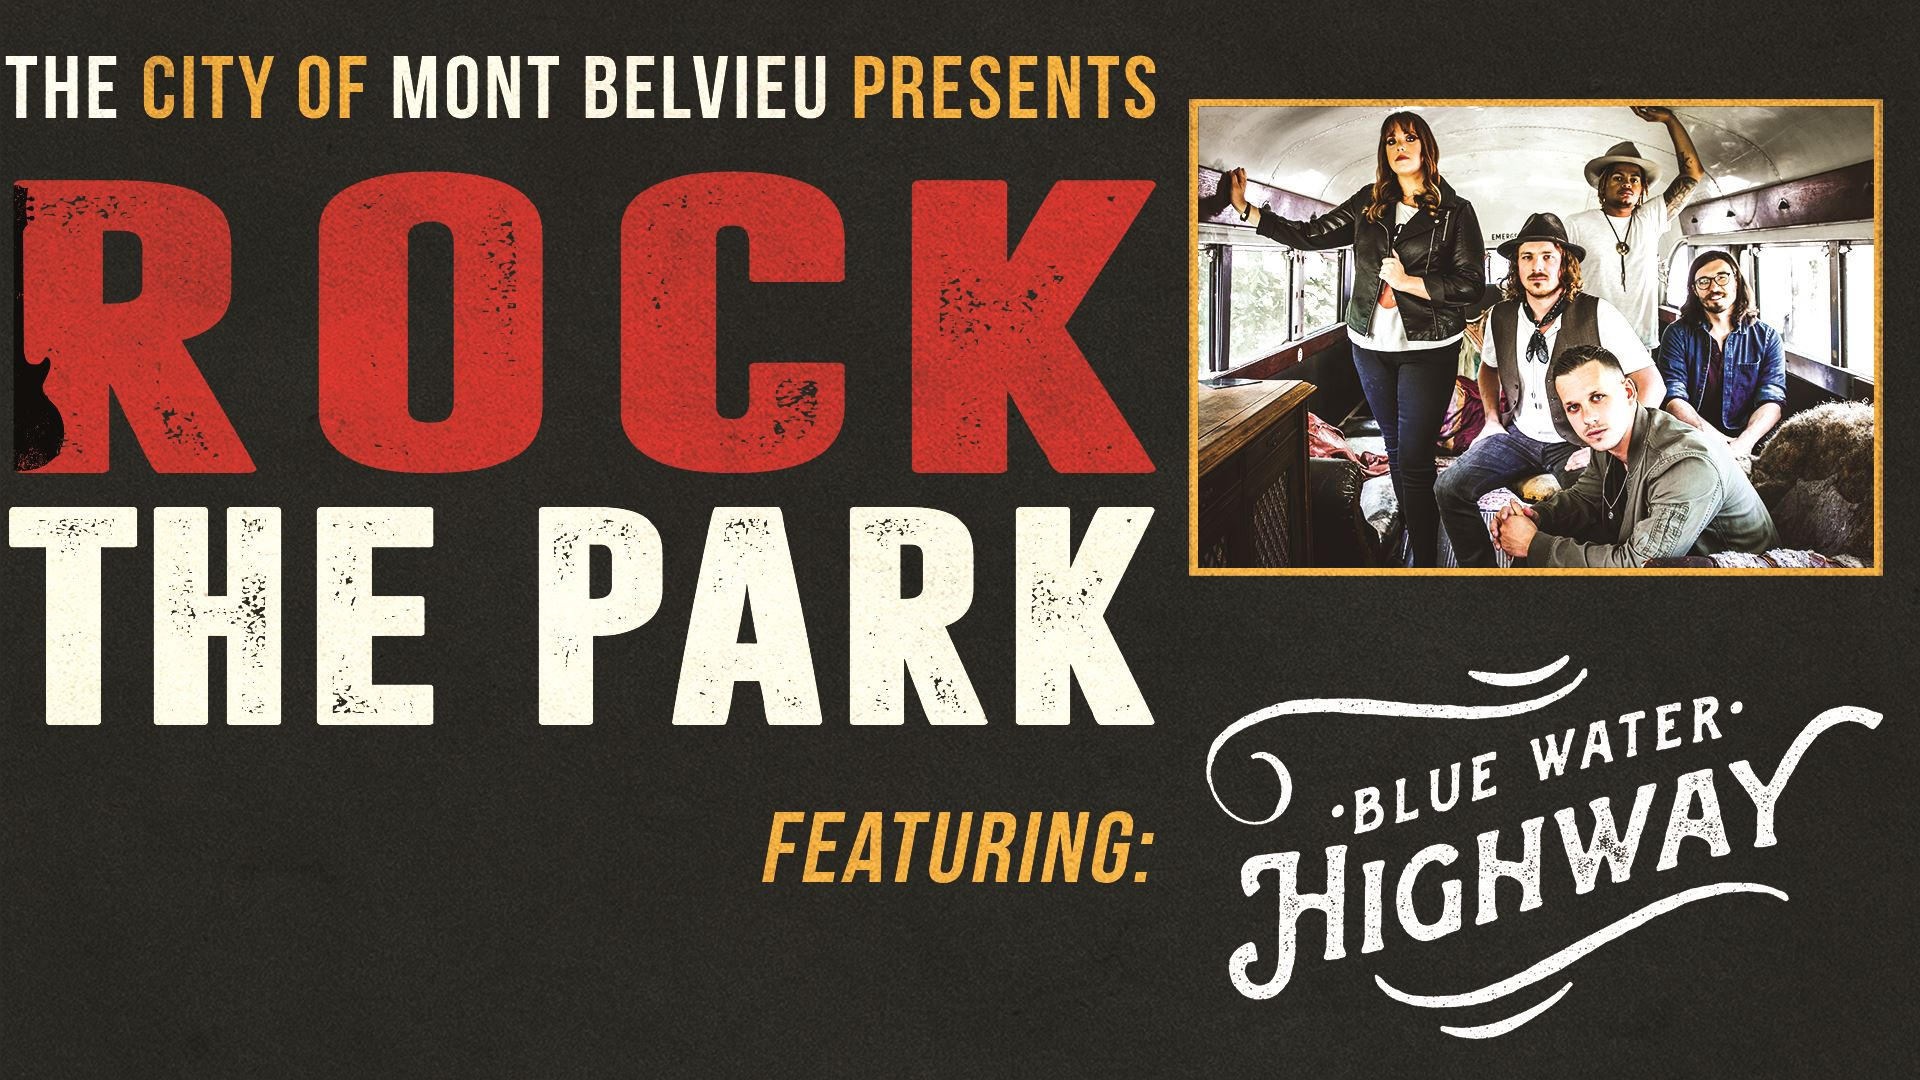 Rock the Park - May 29th featuring Blue Water Highway